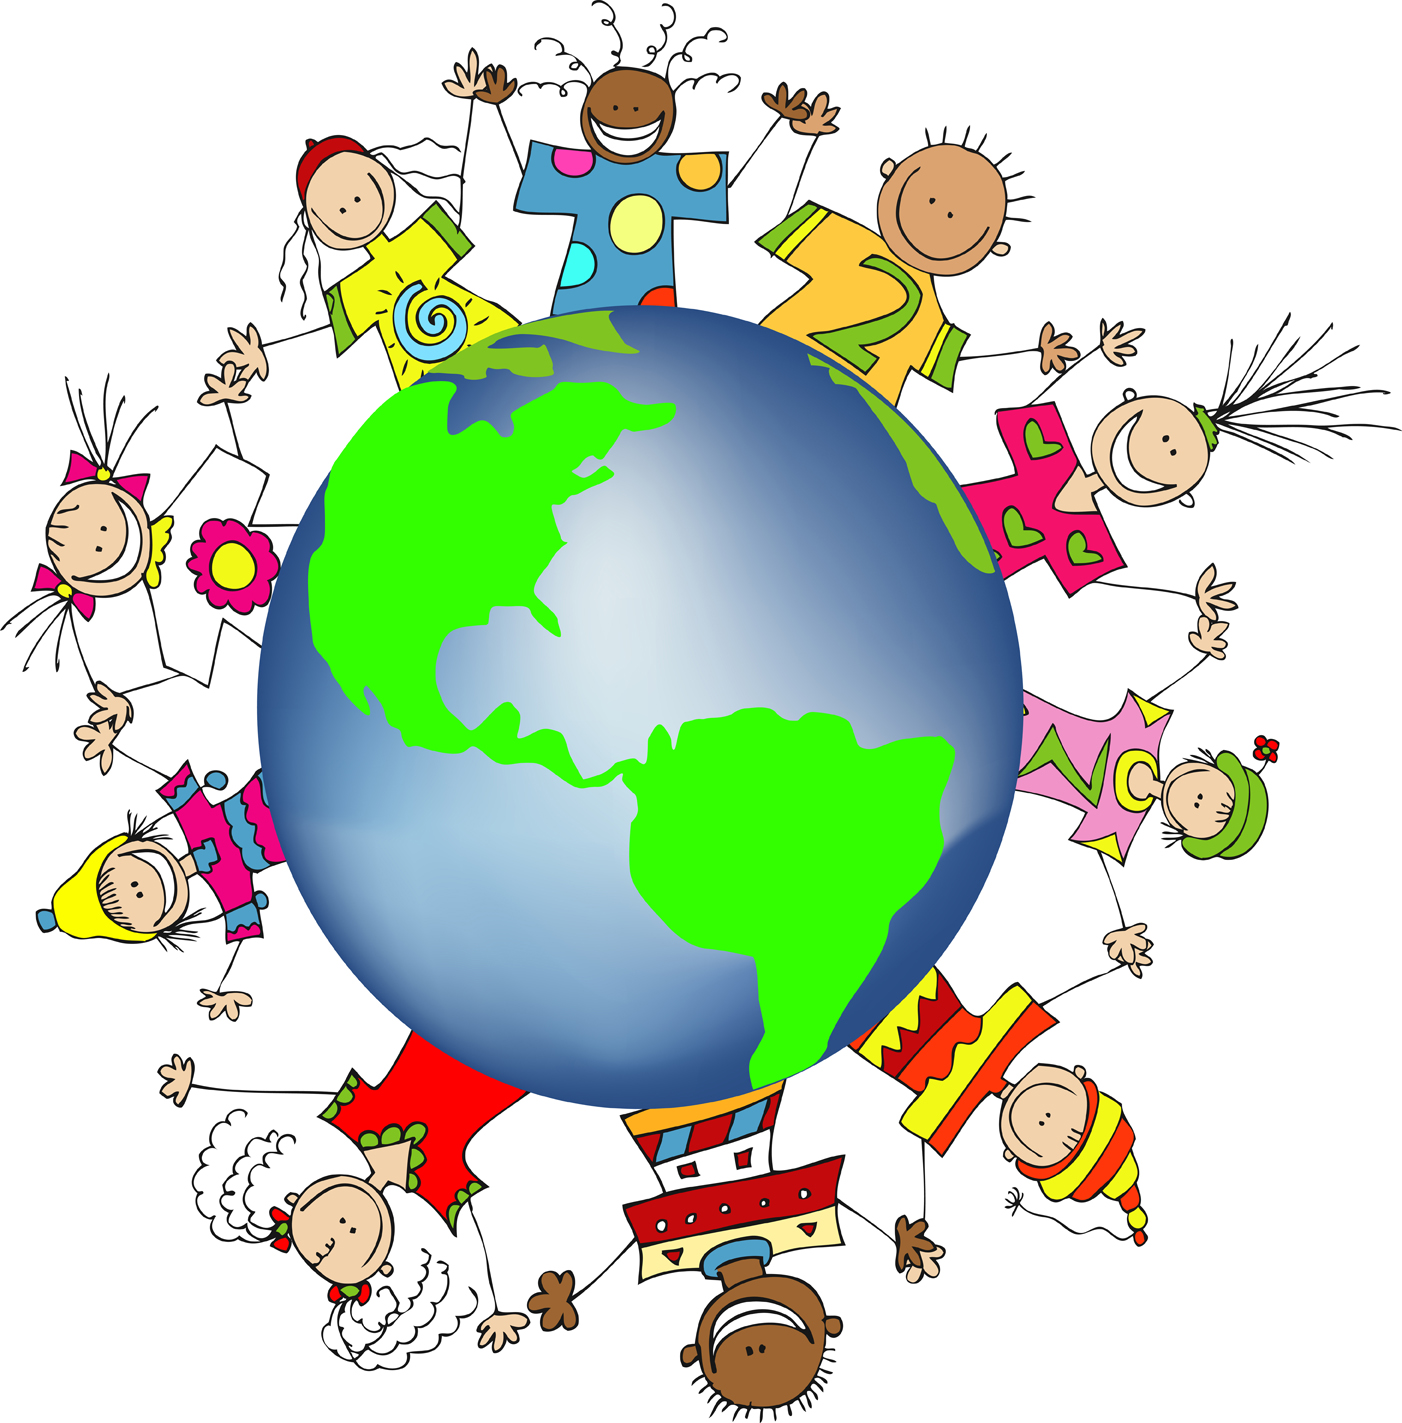 Free World Cliparts, Download Free Clip Art, Free Clip Art.